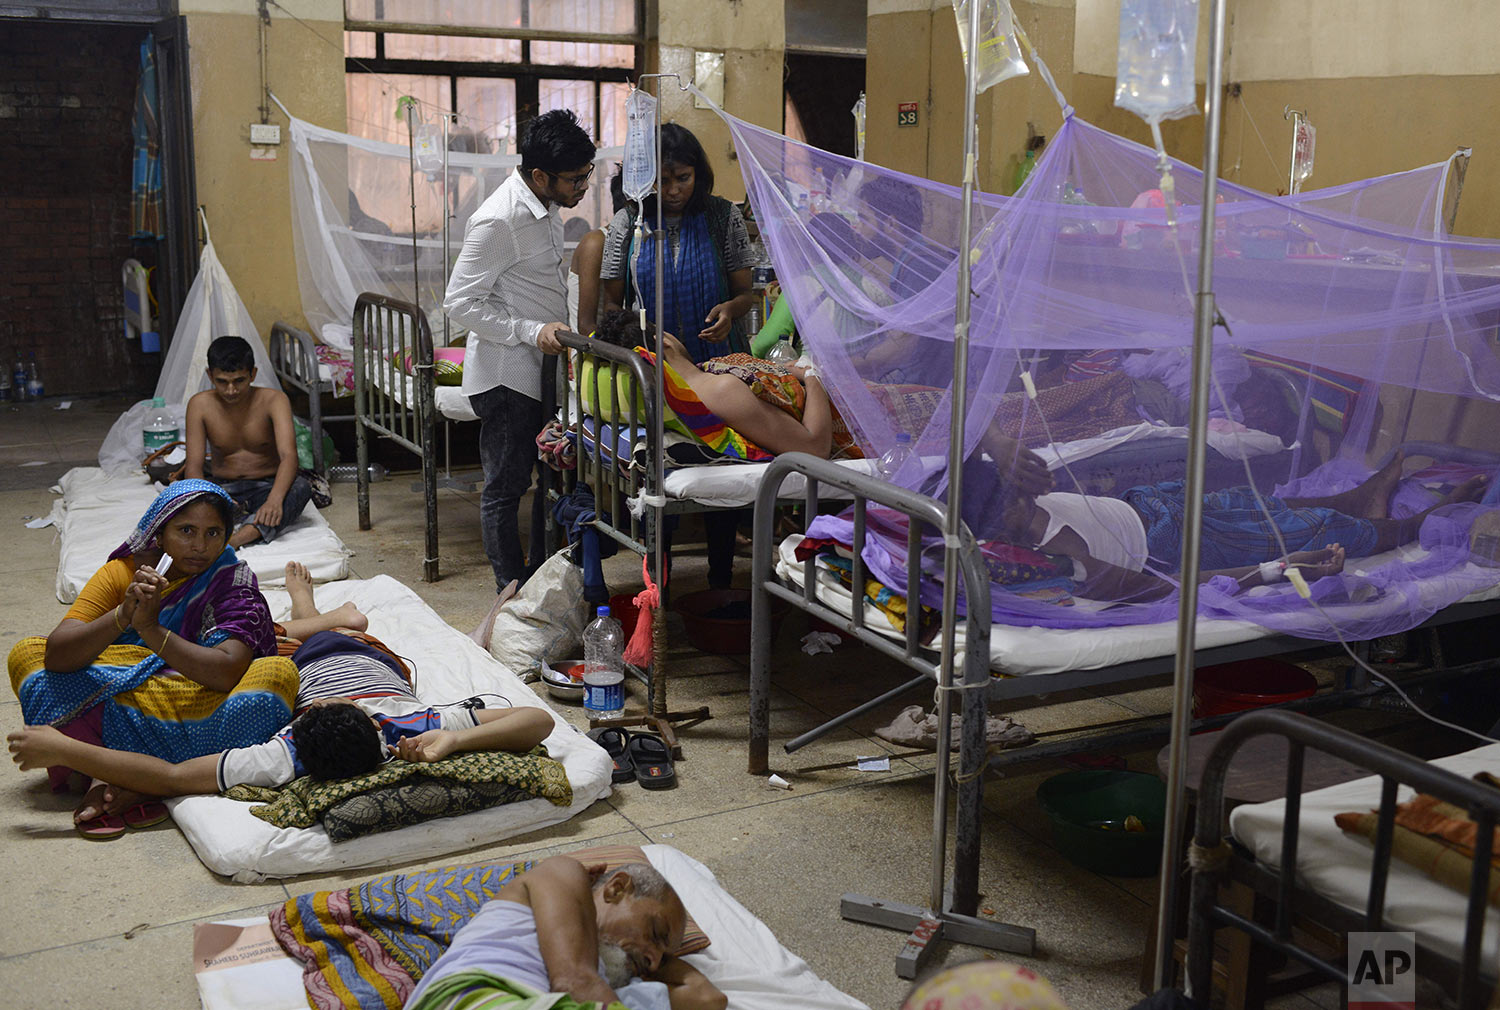 Patients receive treatment for dengue at Shaheed Suhrawardy Medical College and Hospital in Dhaka, Bangladesh, Wednesday, July 31, 2019. (AP Photo/Mahmud Hossain Opu)